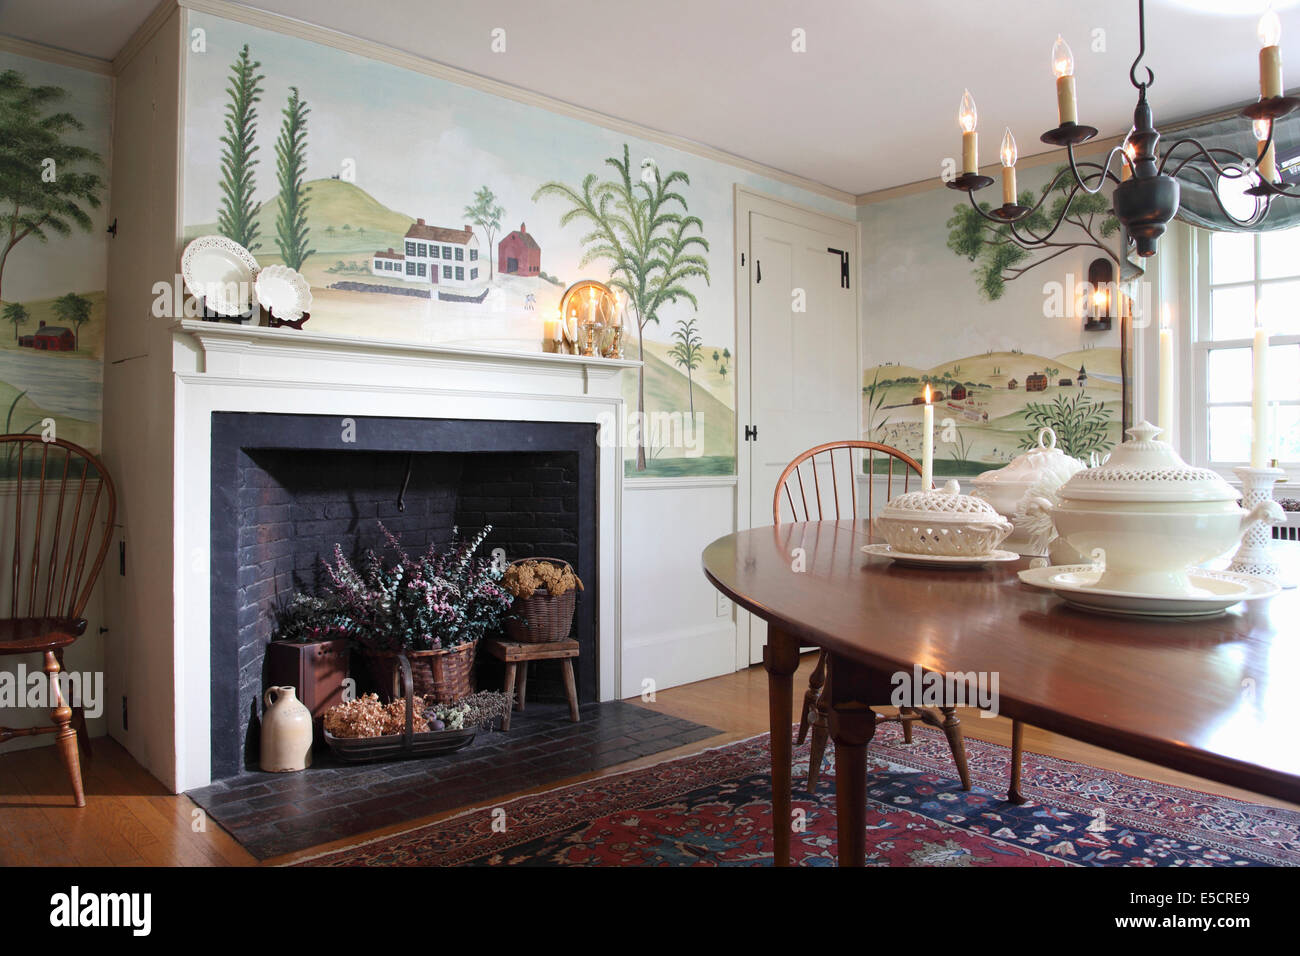 Dining Room With Wall Mural Of Trees And Countryside In Folk Art Style.  Fireplace Containing Part 57